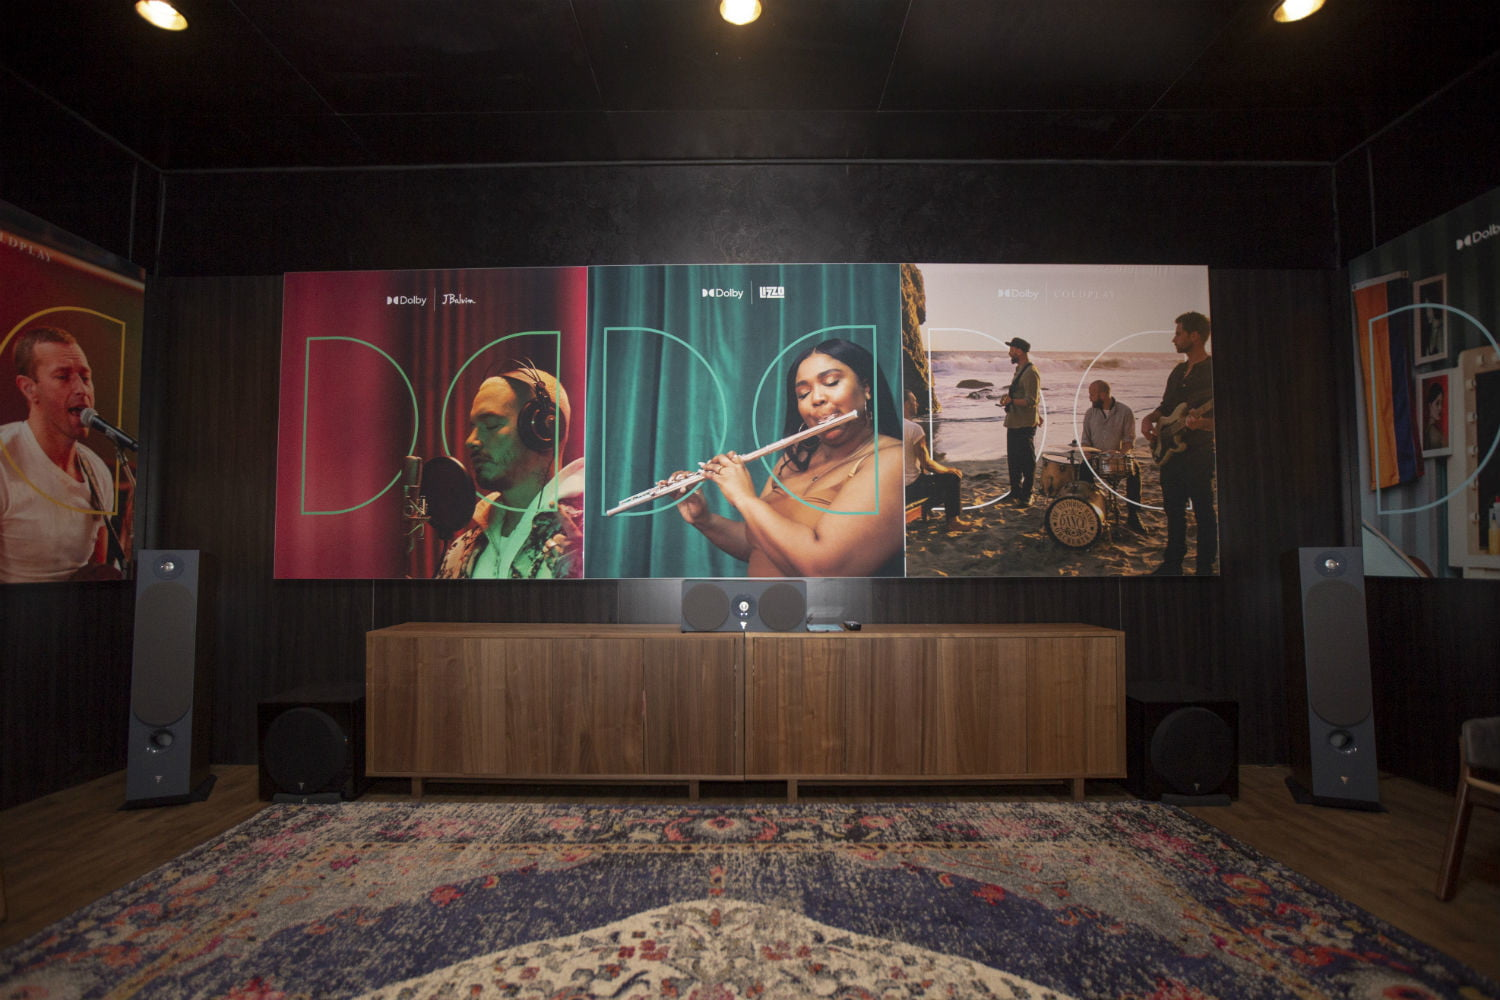 Dolby Atmos is great for movies, but wait till you hear what it does for music